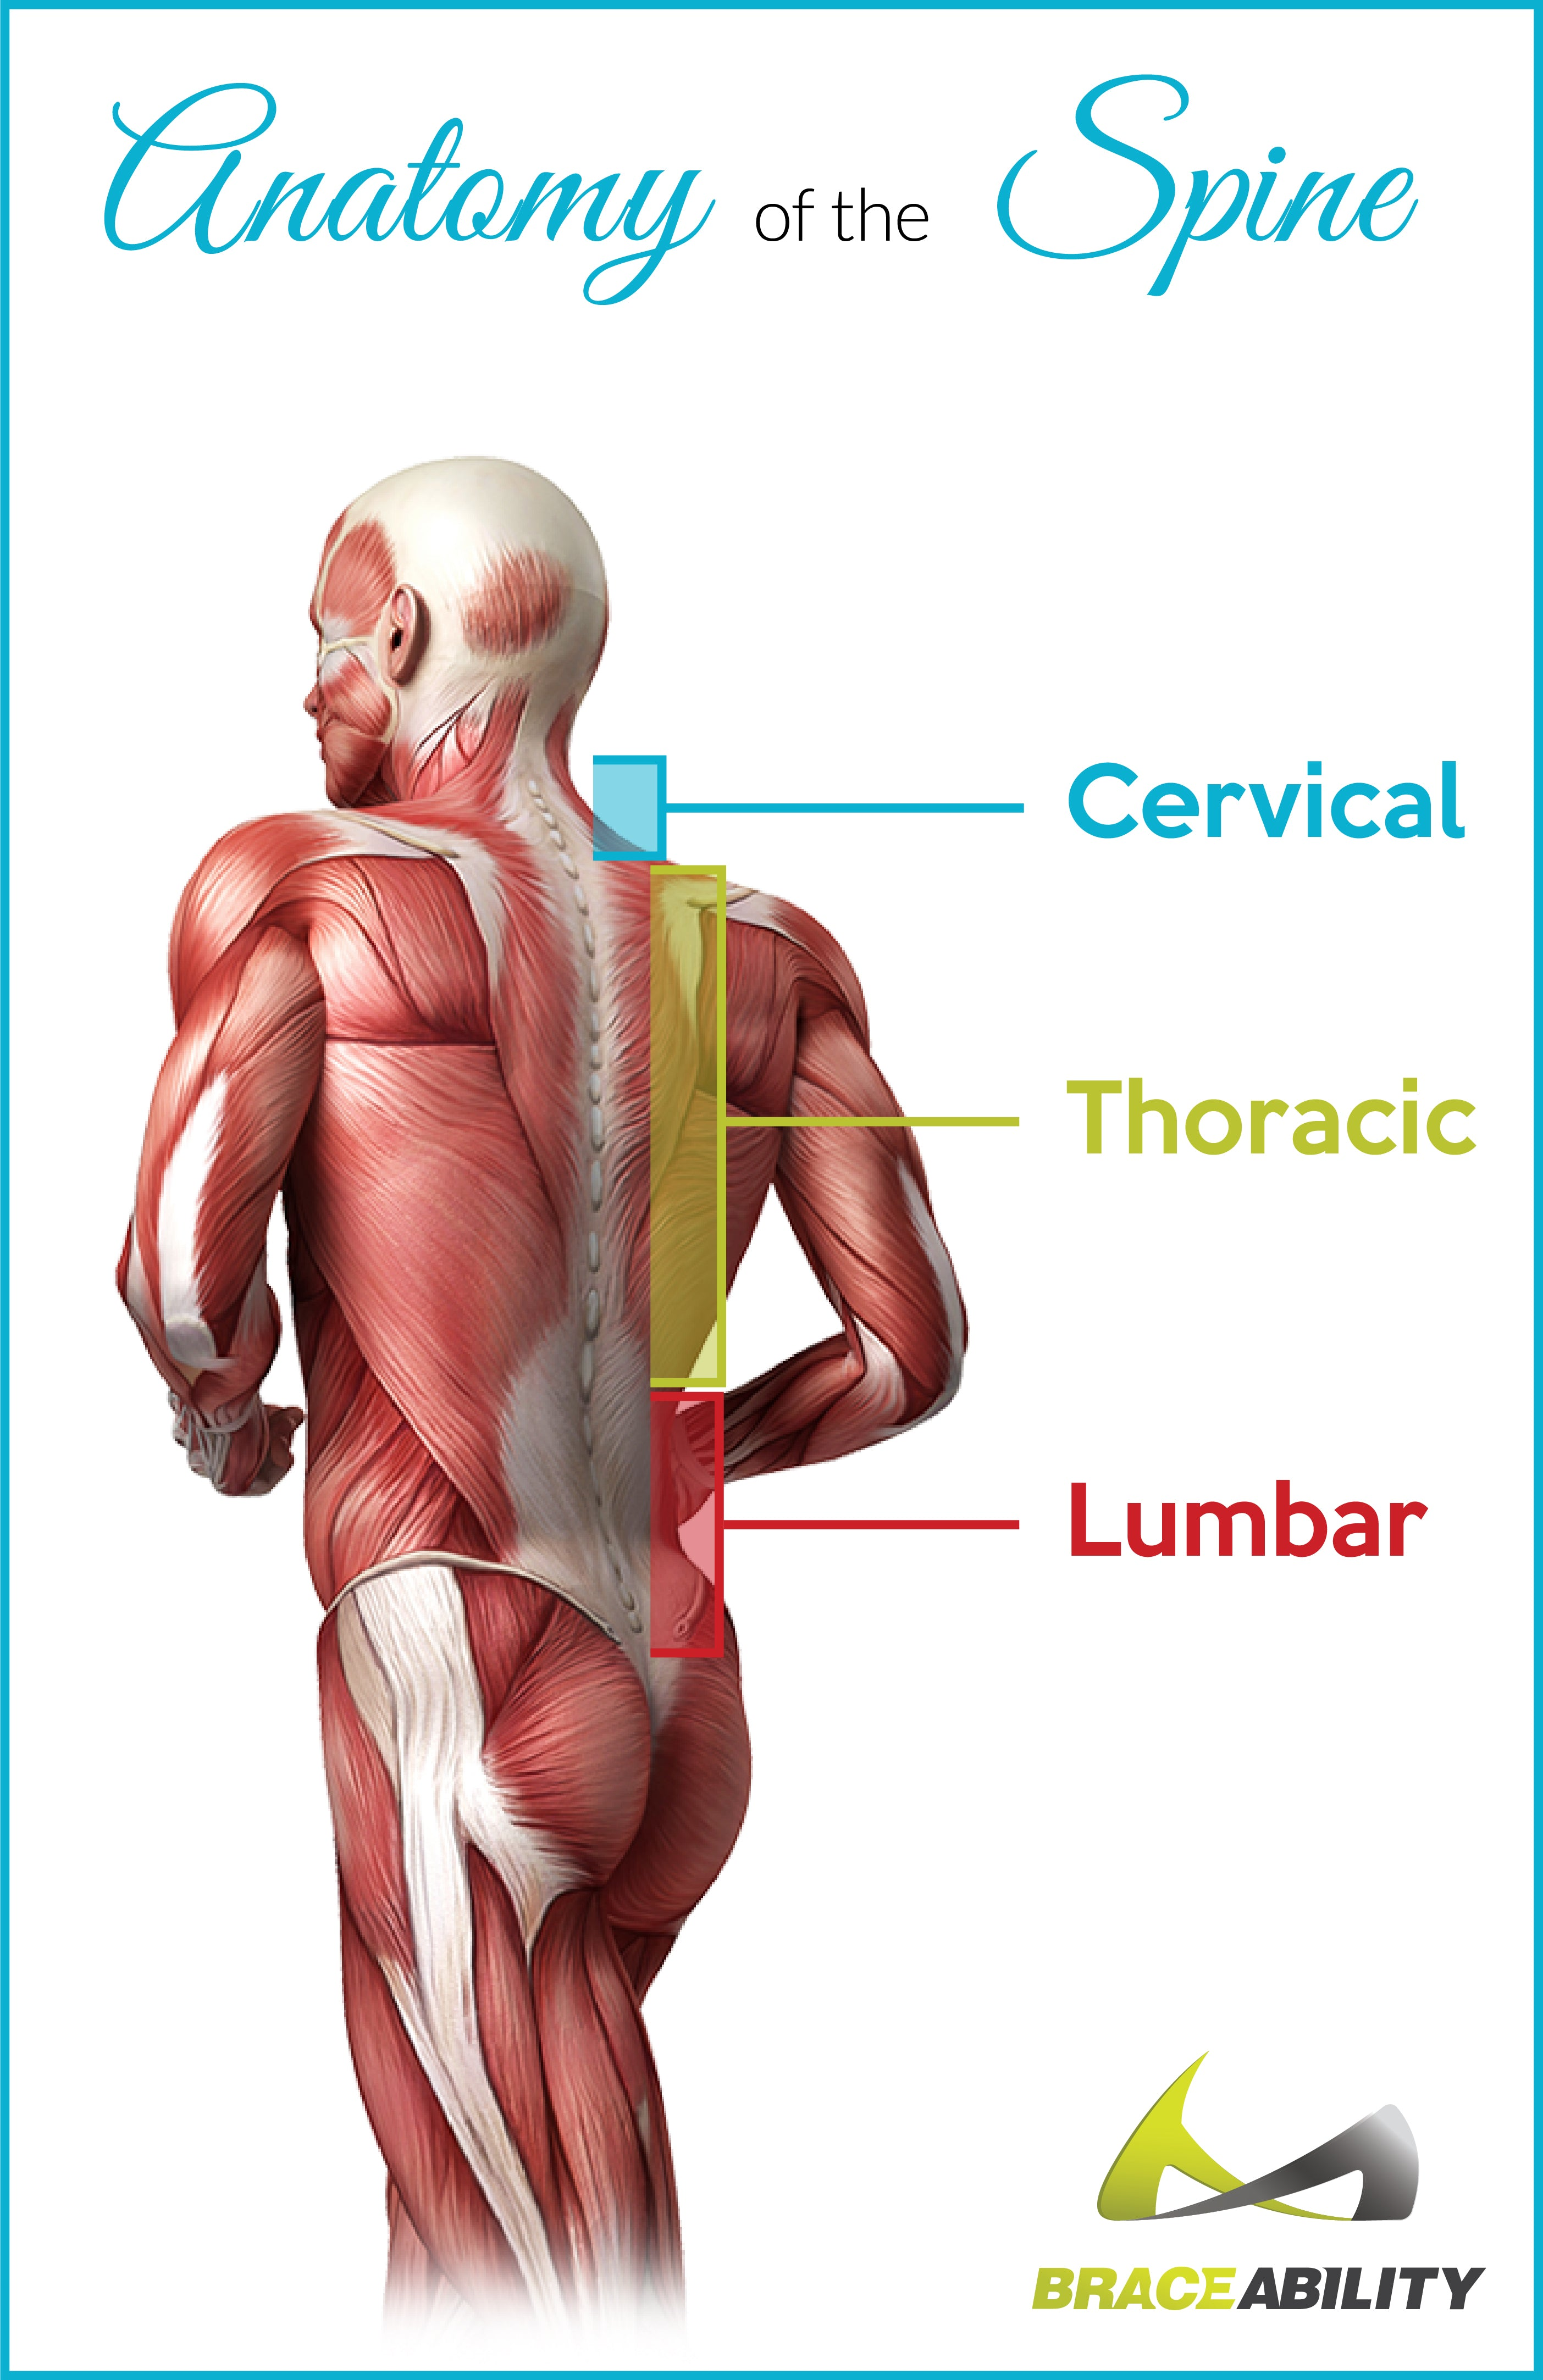 Thoracic Spine Neck & Back Pain | Symptoms, Causes & Treatment